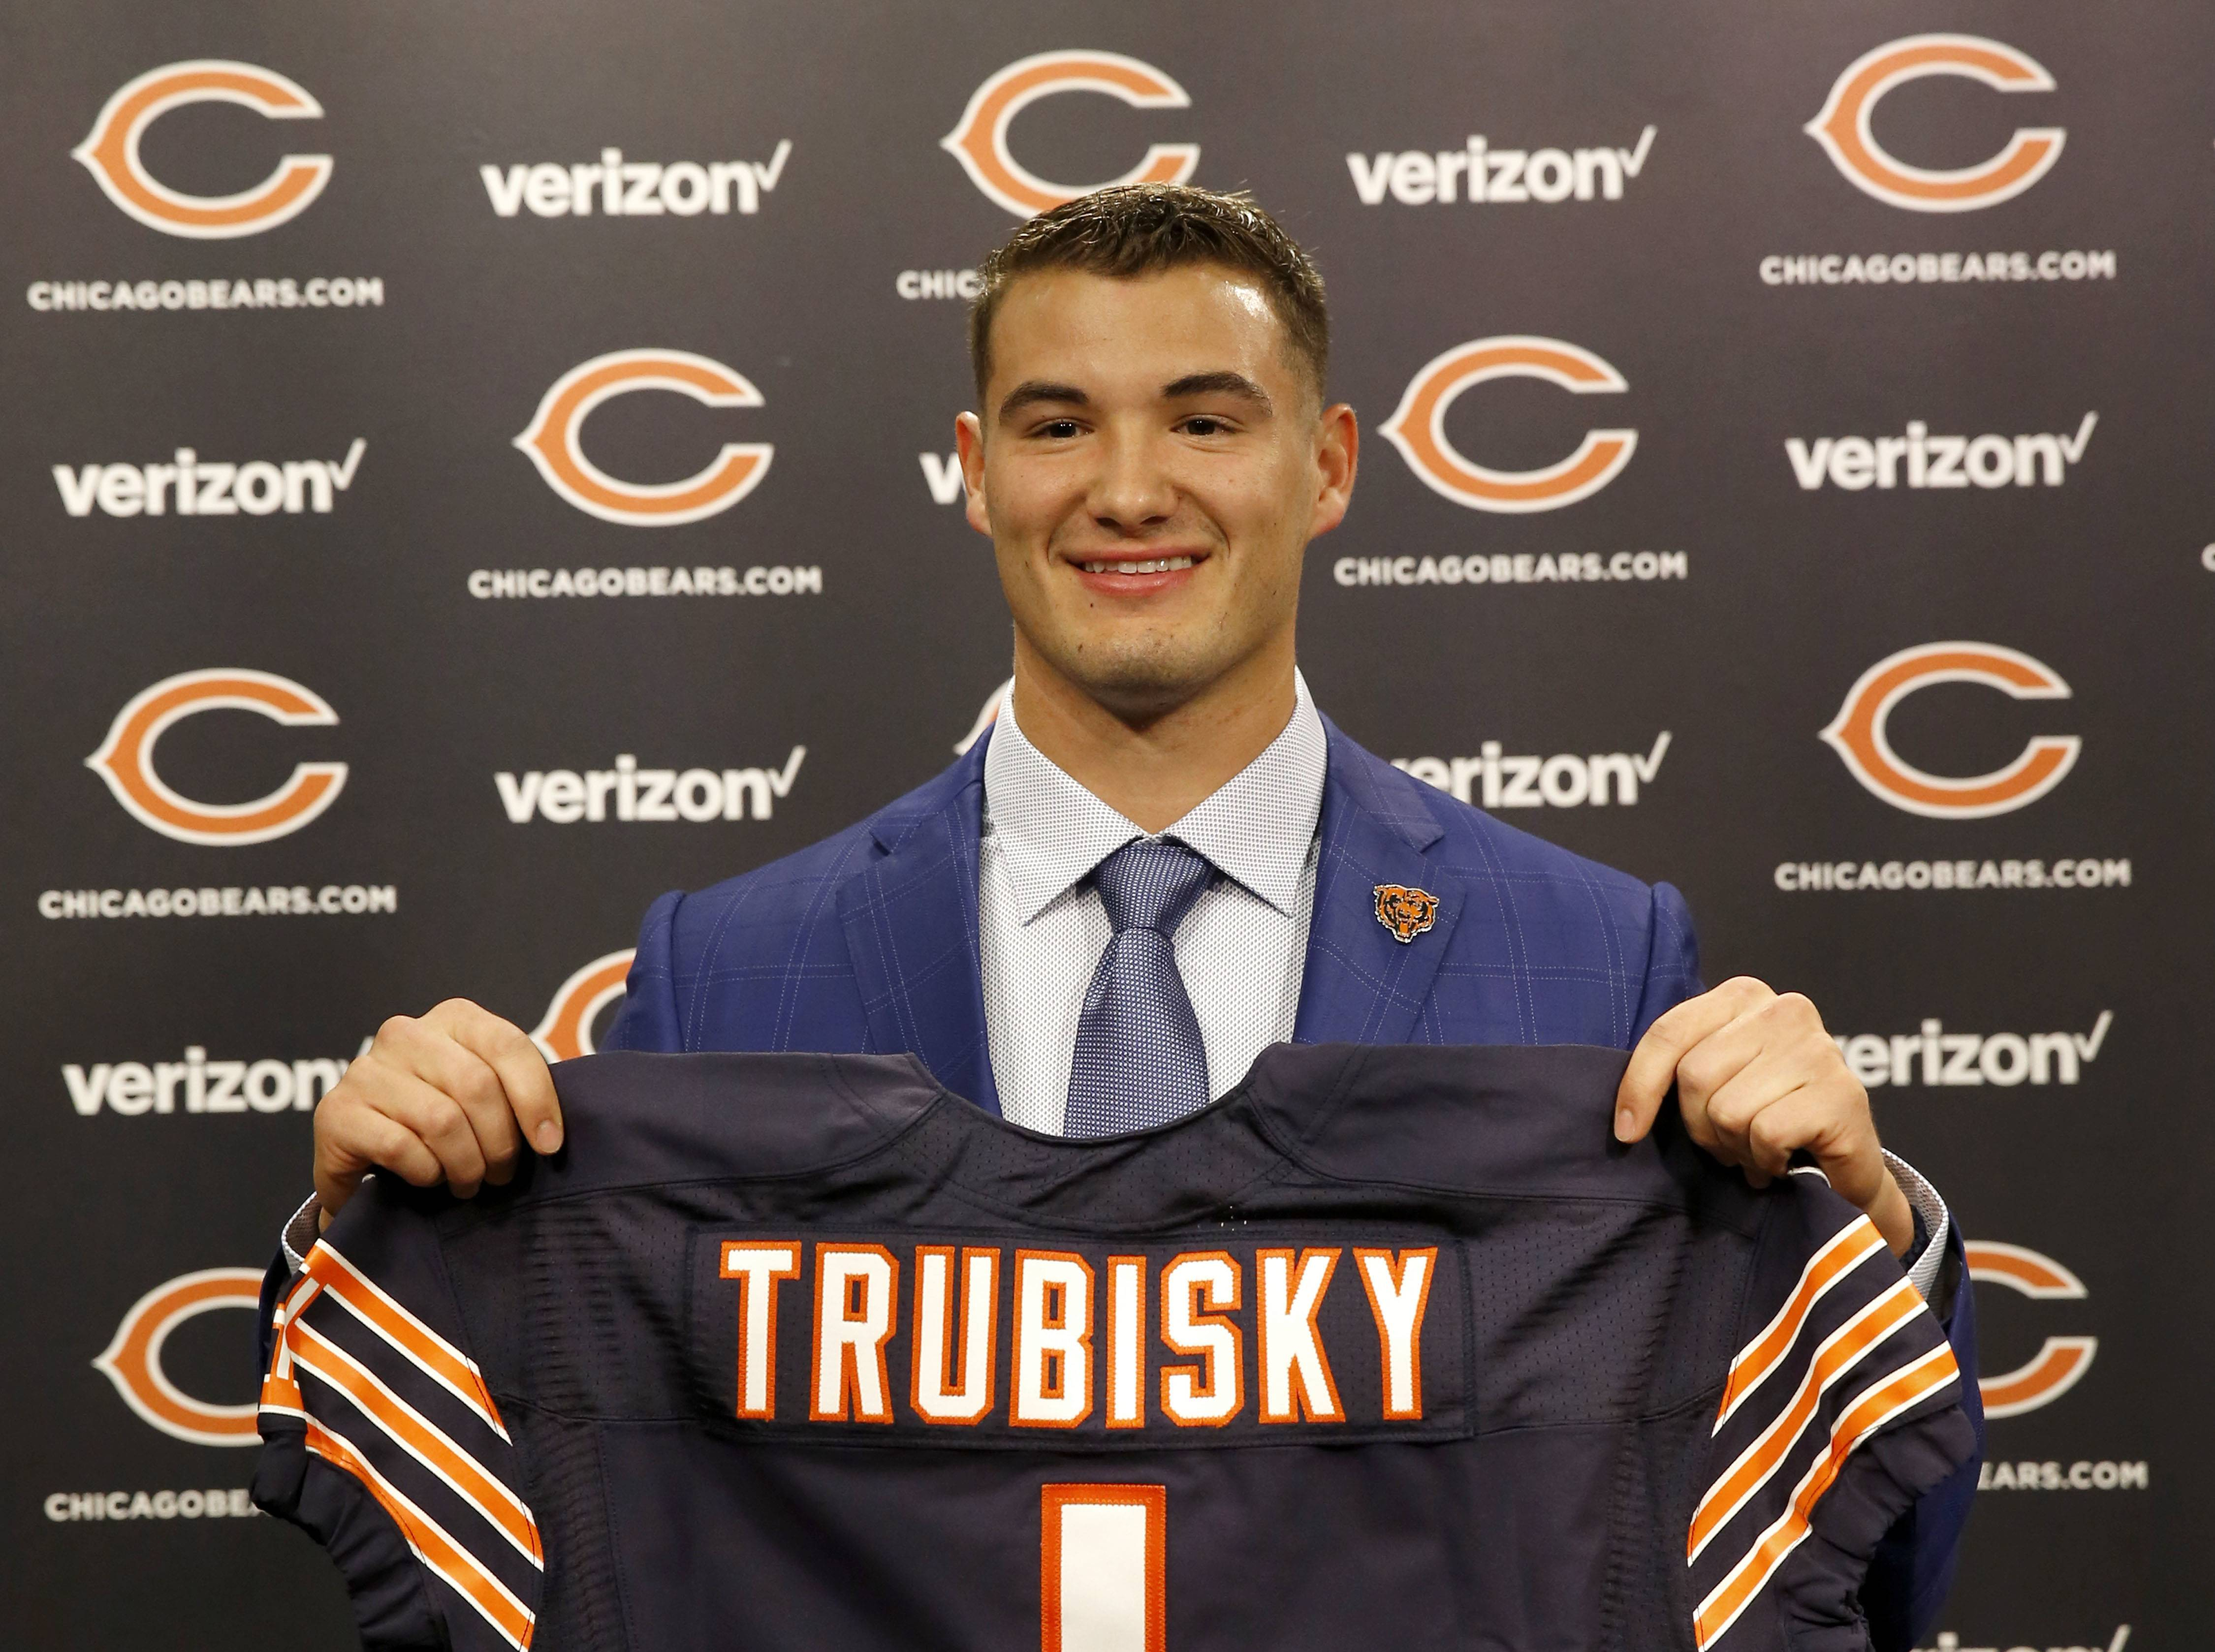 The Chicago Bears have signed to a four-year deal with first-round draft pick quarterback Mitchell Trubisky, team officials announced Wednesday.